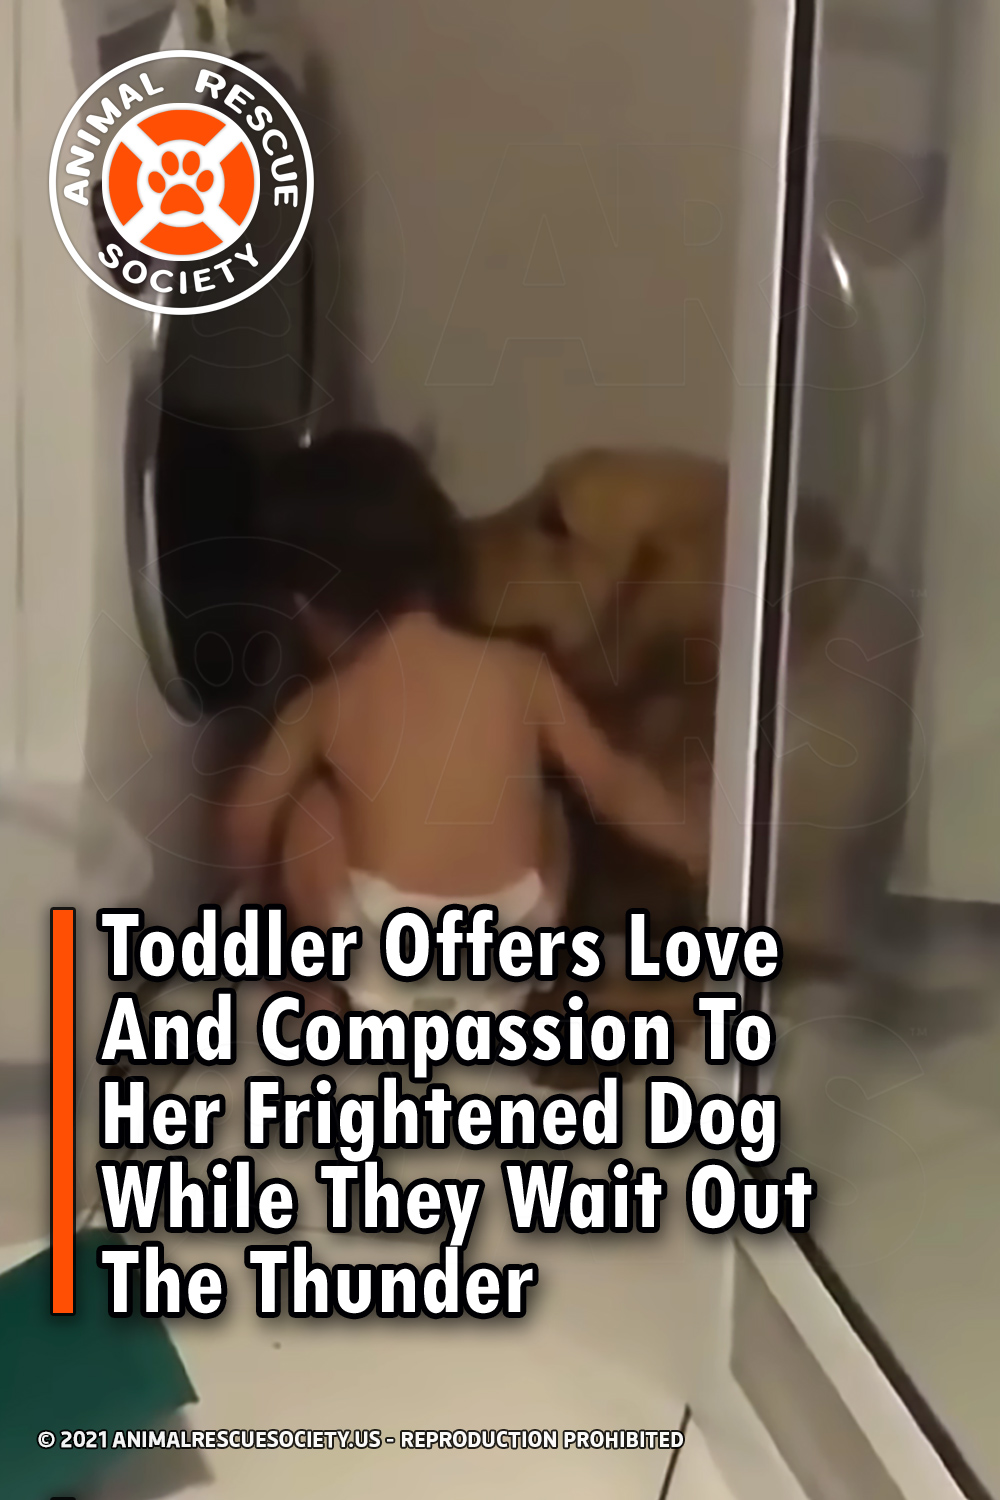 Toddler Offers Love And Compassion To Her Frightened Dog While They Wait Out The Thunder